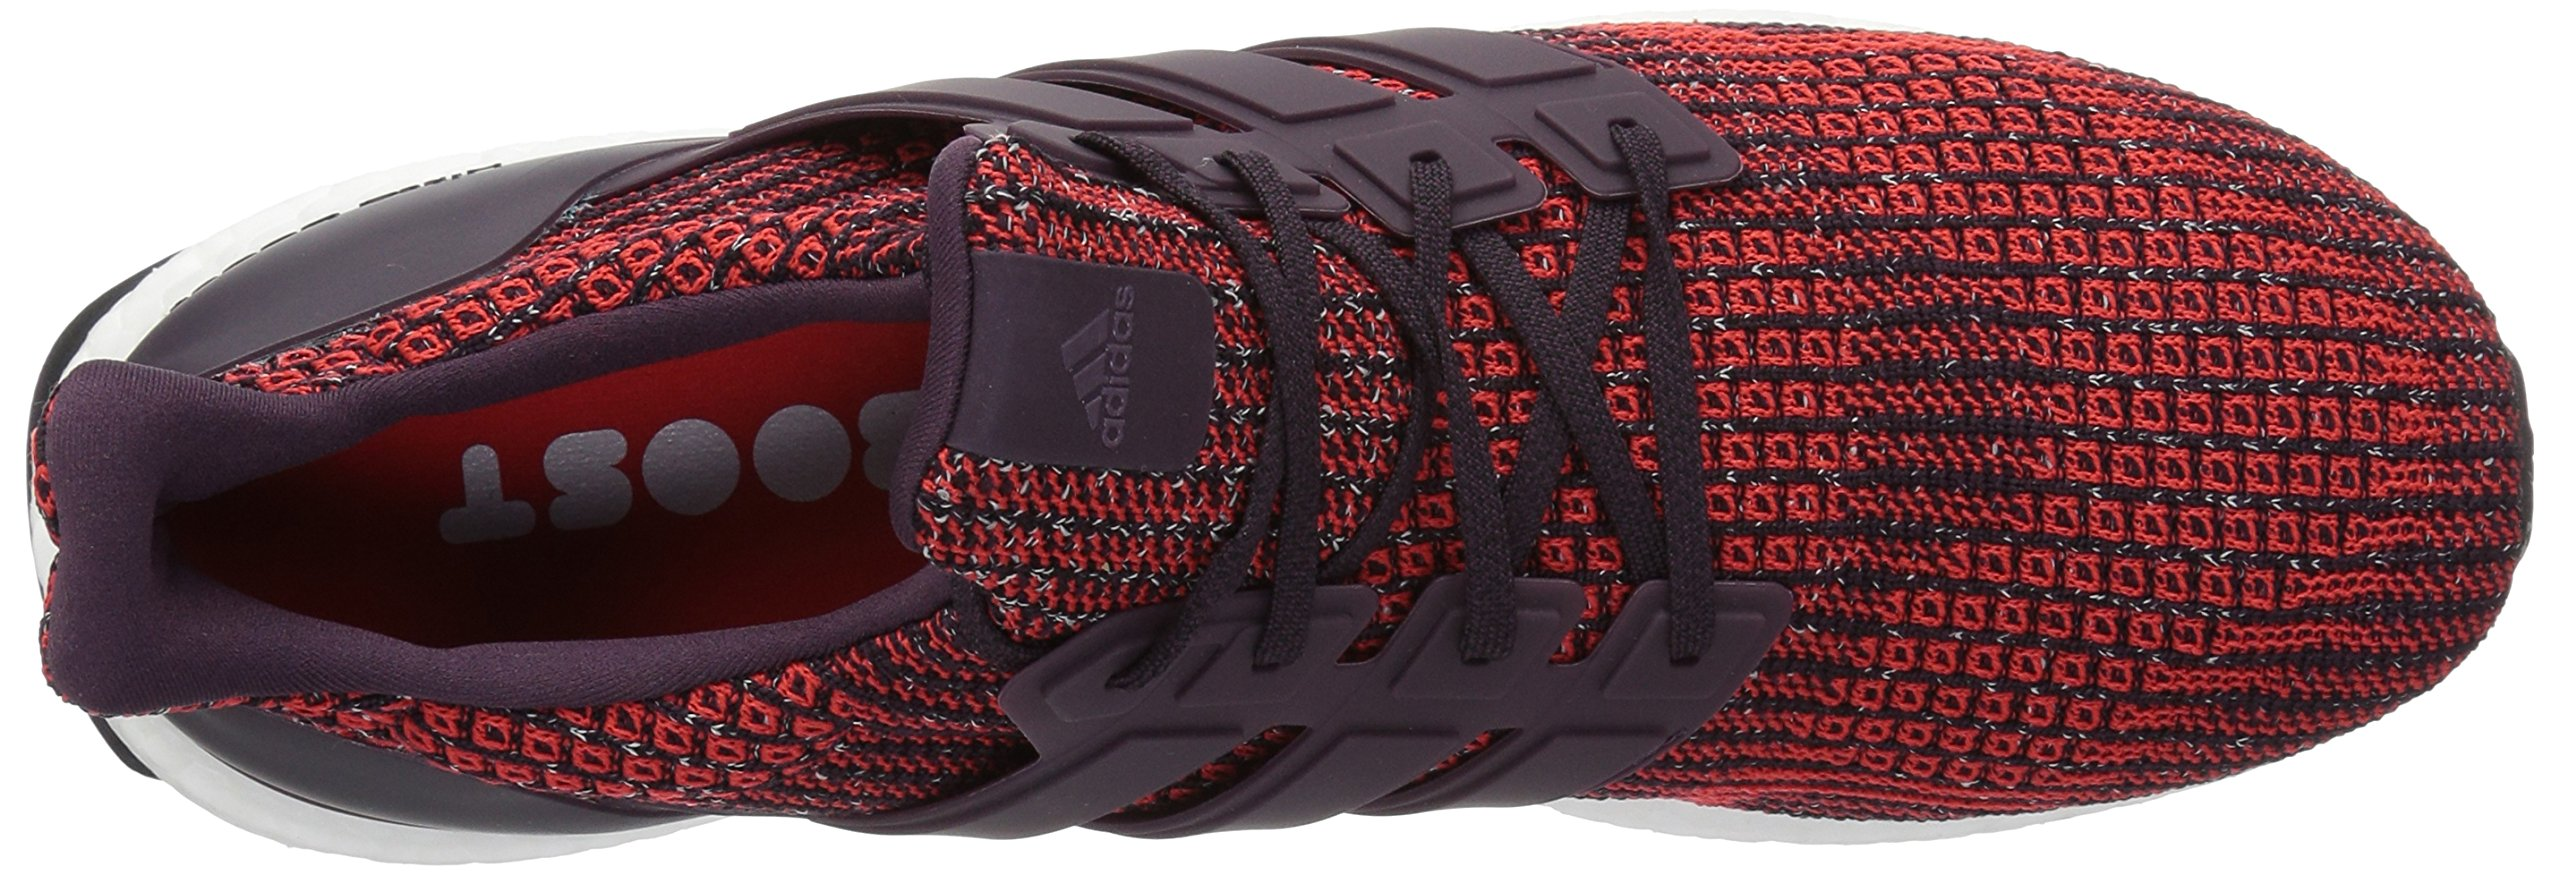 adidas Men's Ultraboost Road Running Shoe, Noble Red/Noble Red/Core Black, 5 M US by adidas (Image #8)